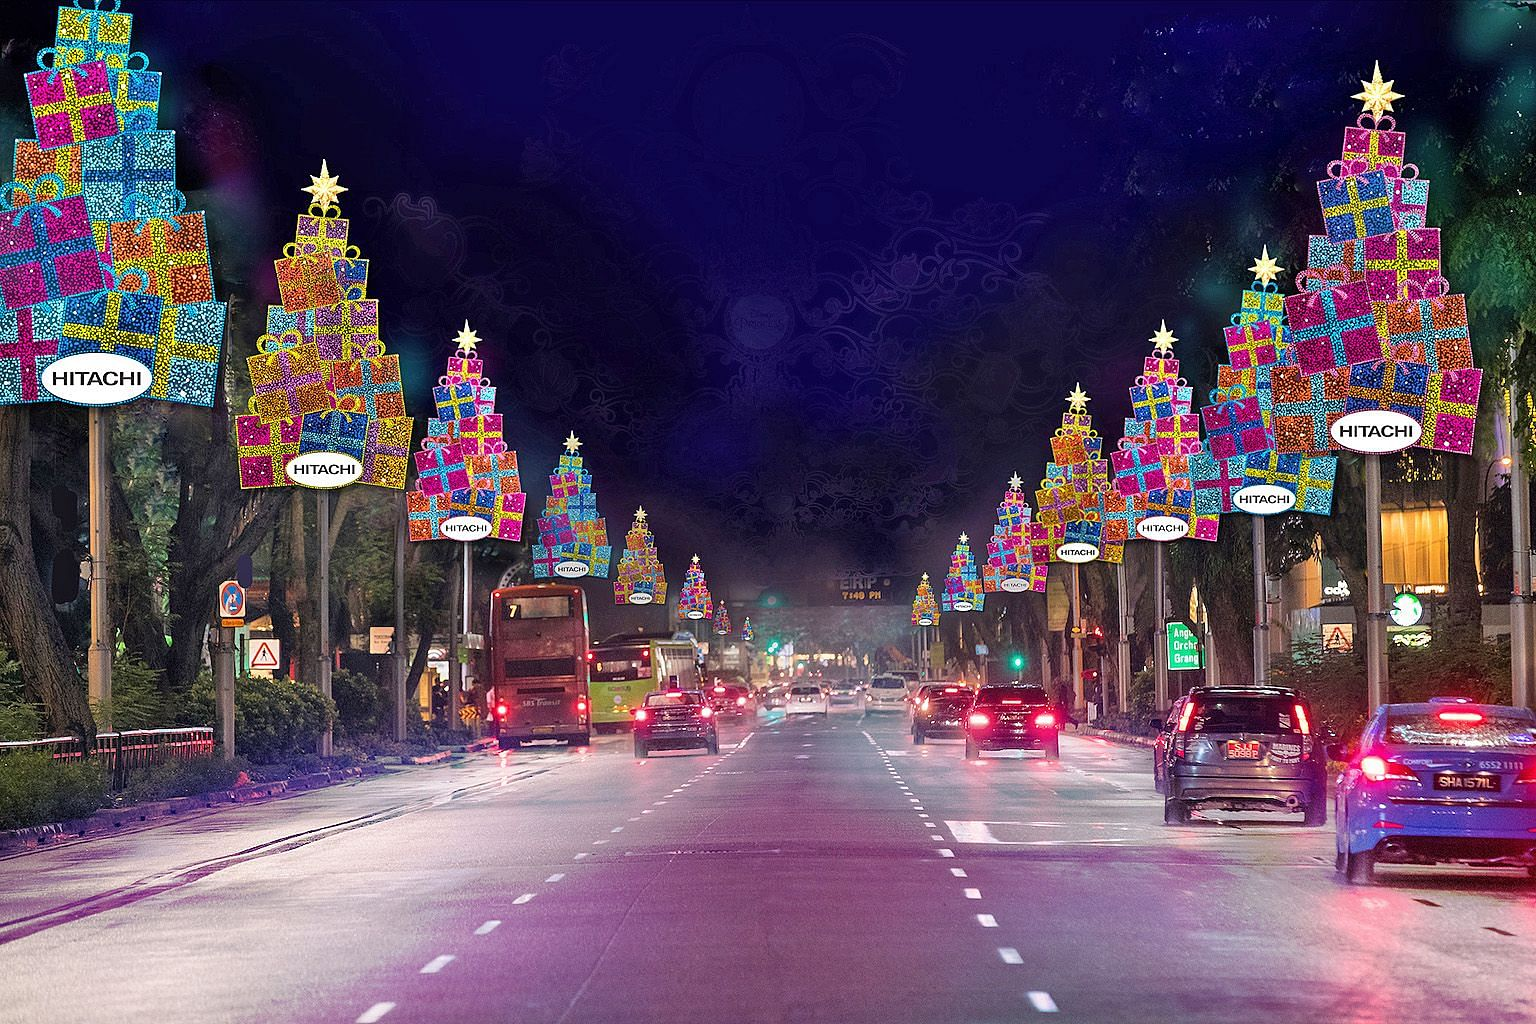 Left: An artist's impression of how the main arch of the Orchard Road Christmas light-up will look this year. Artists' impressions of the Christmas decorations that will adorn lamp posts and hang from trees this year. The light-up will run from Nov 1